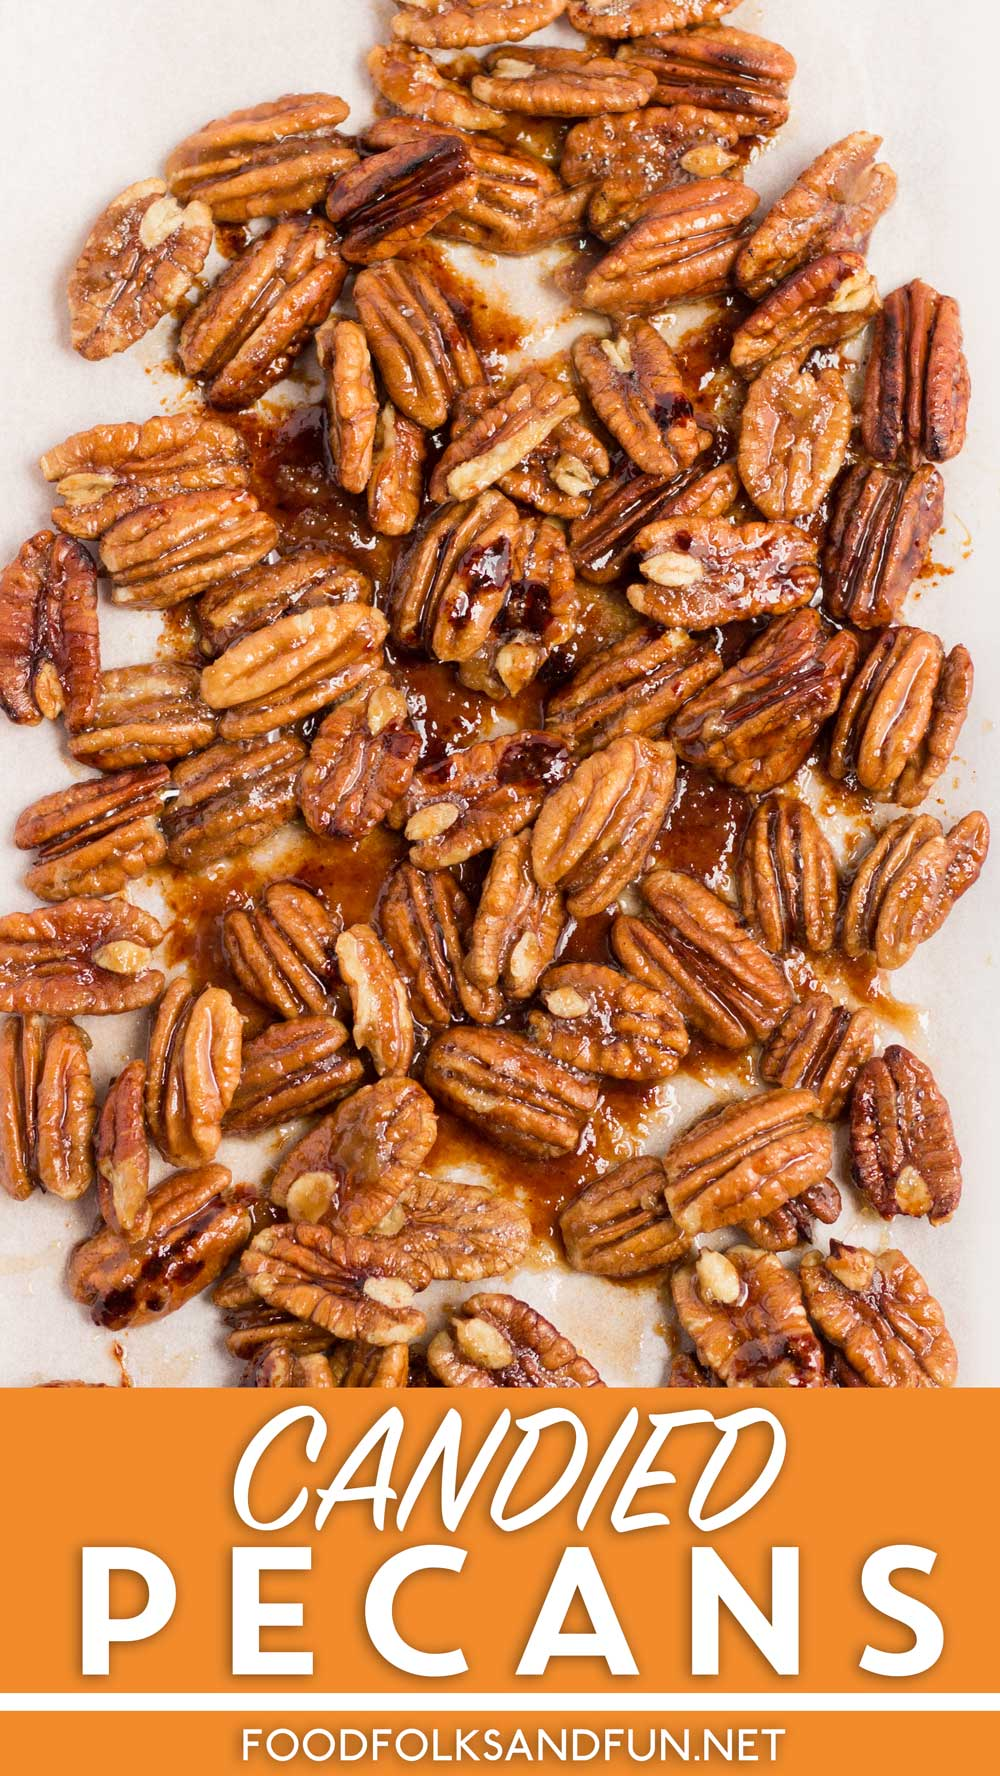 Candied pecans on a serving platter with text overlay for Pinterest